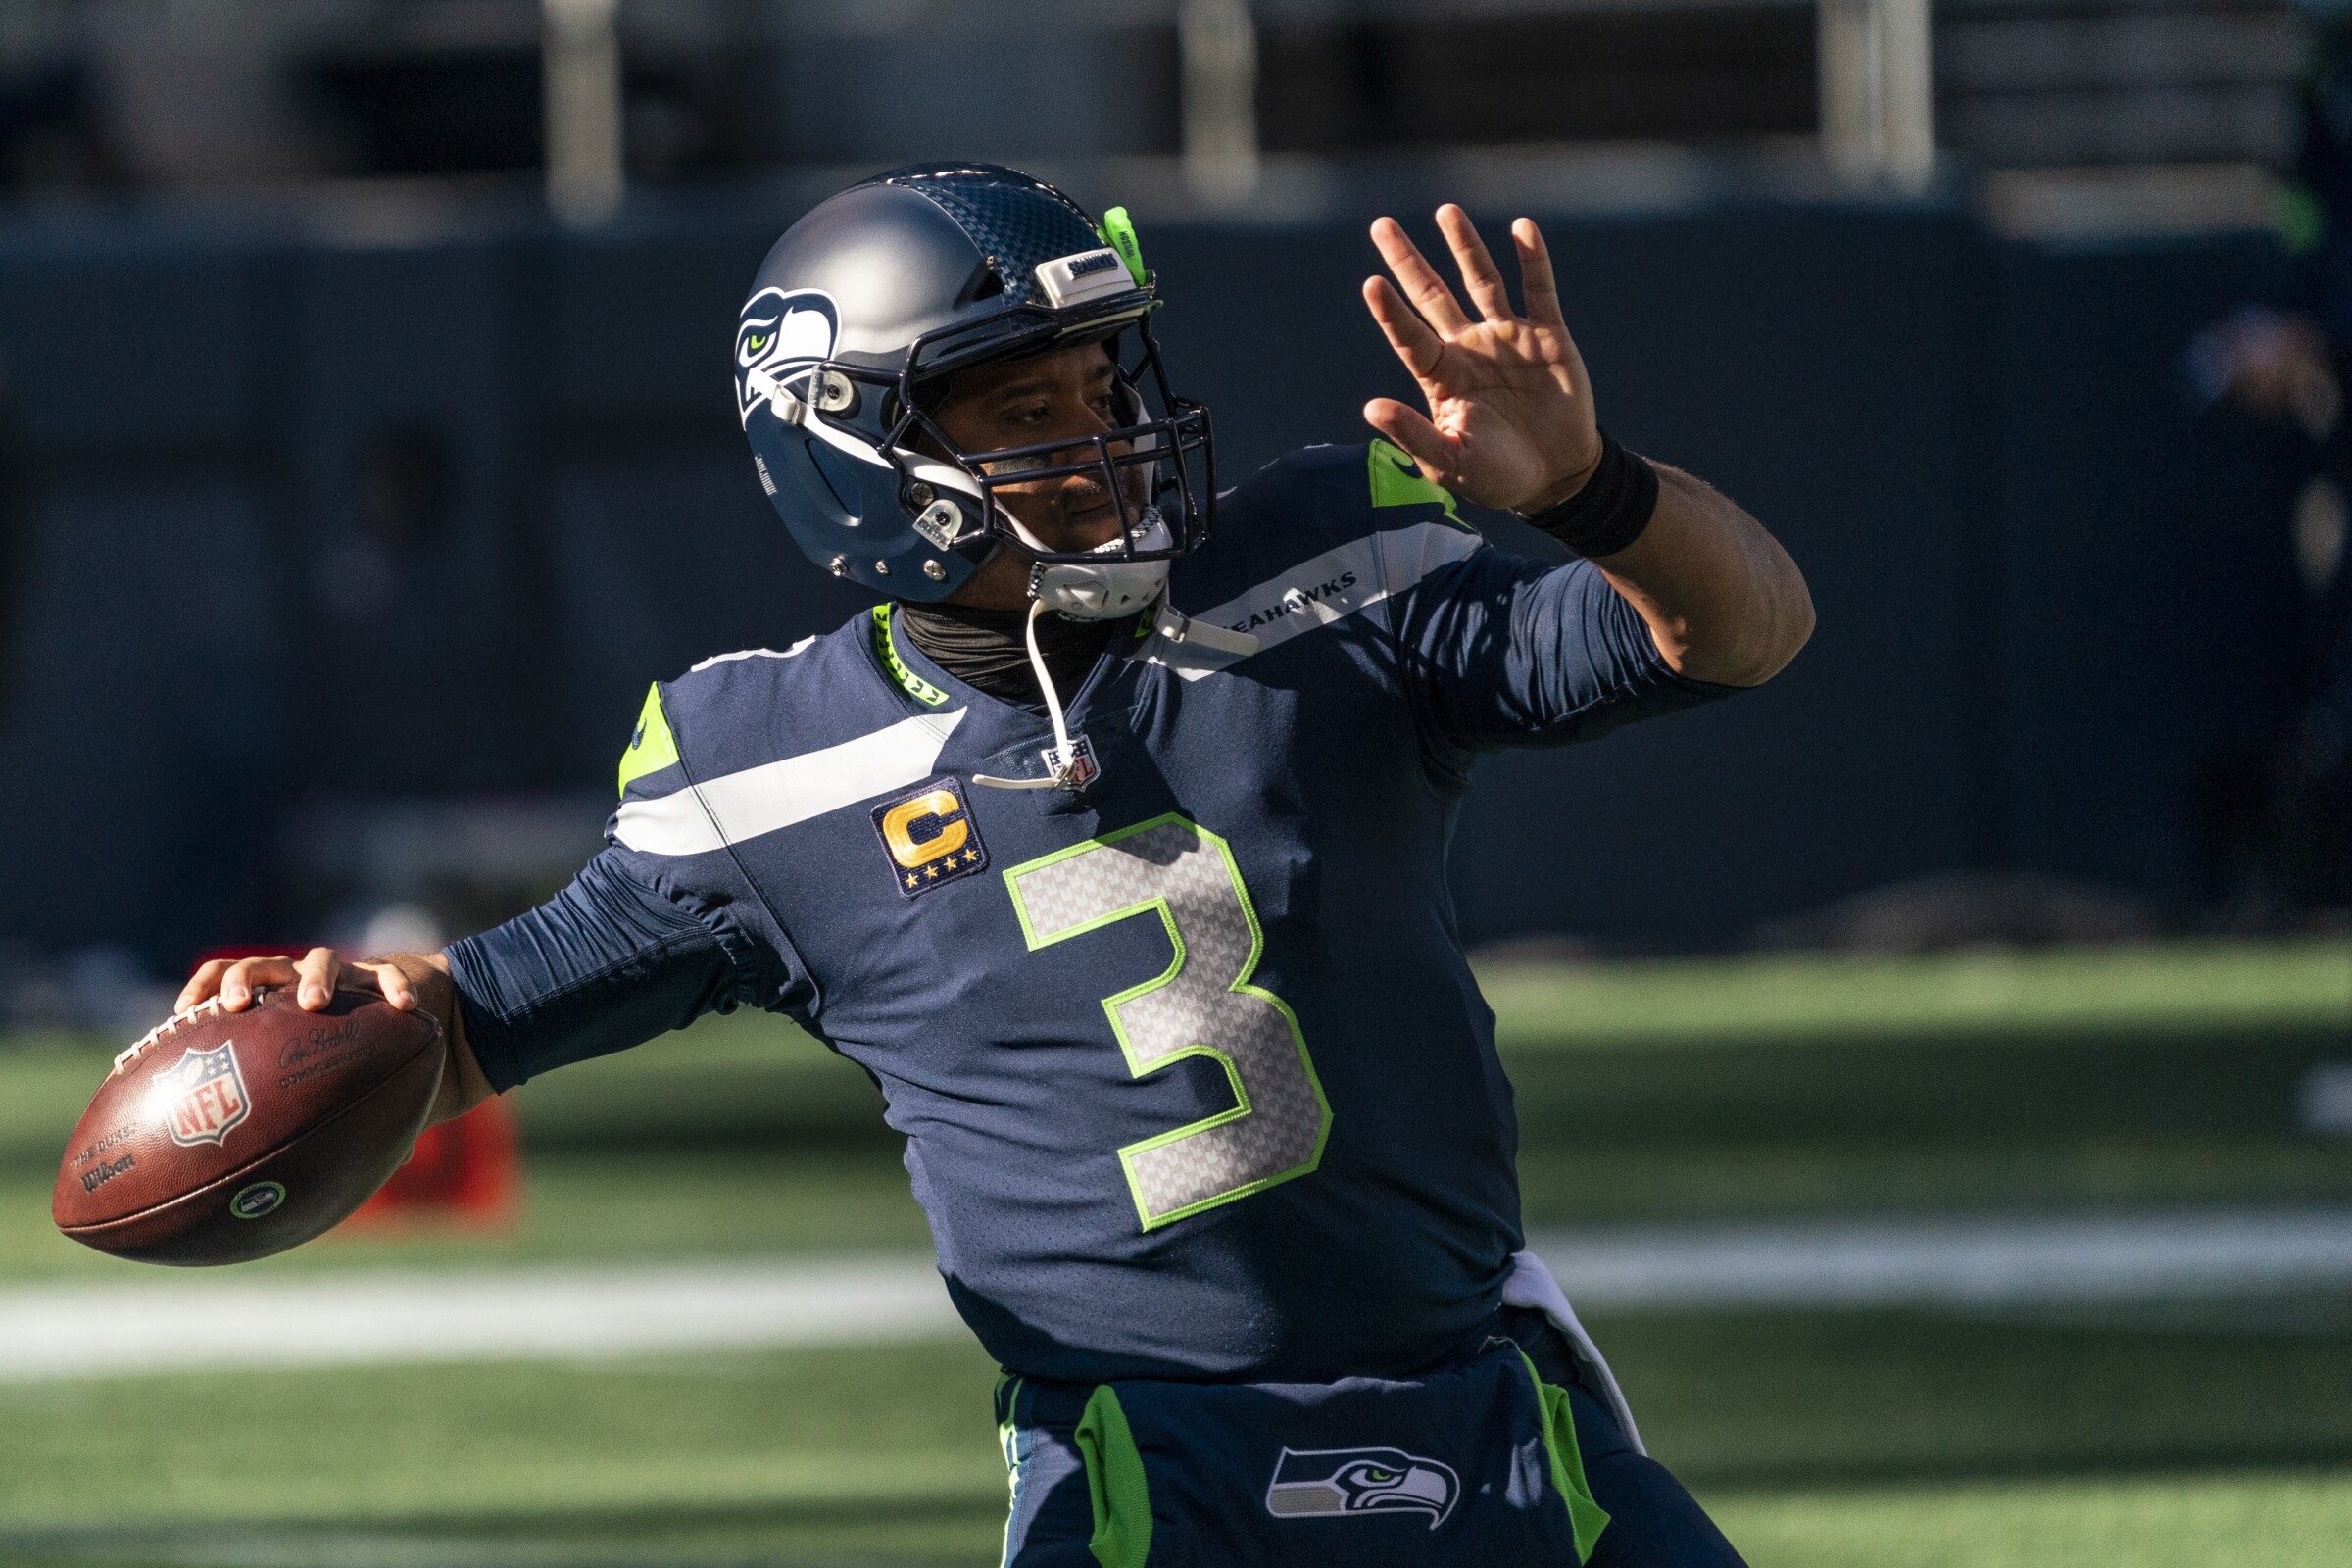 Seattle Seahawks quarterback Russell Wilson throws the ball during warmups.